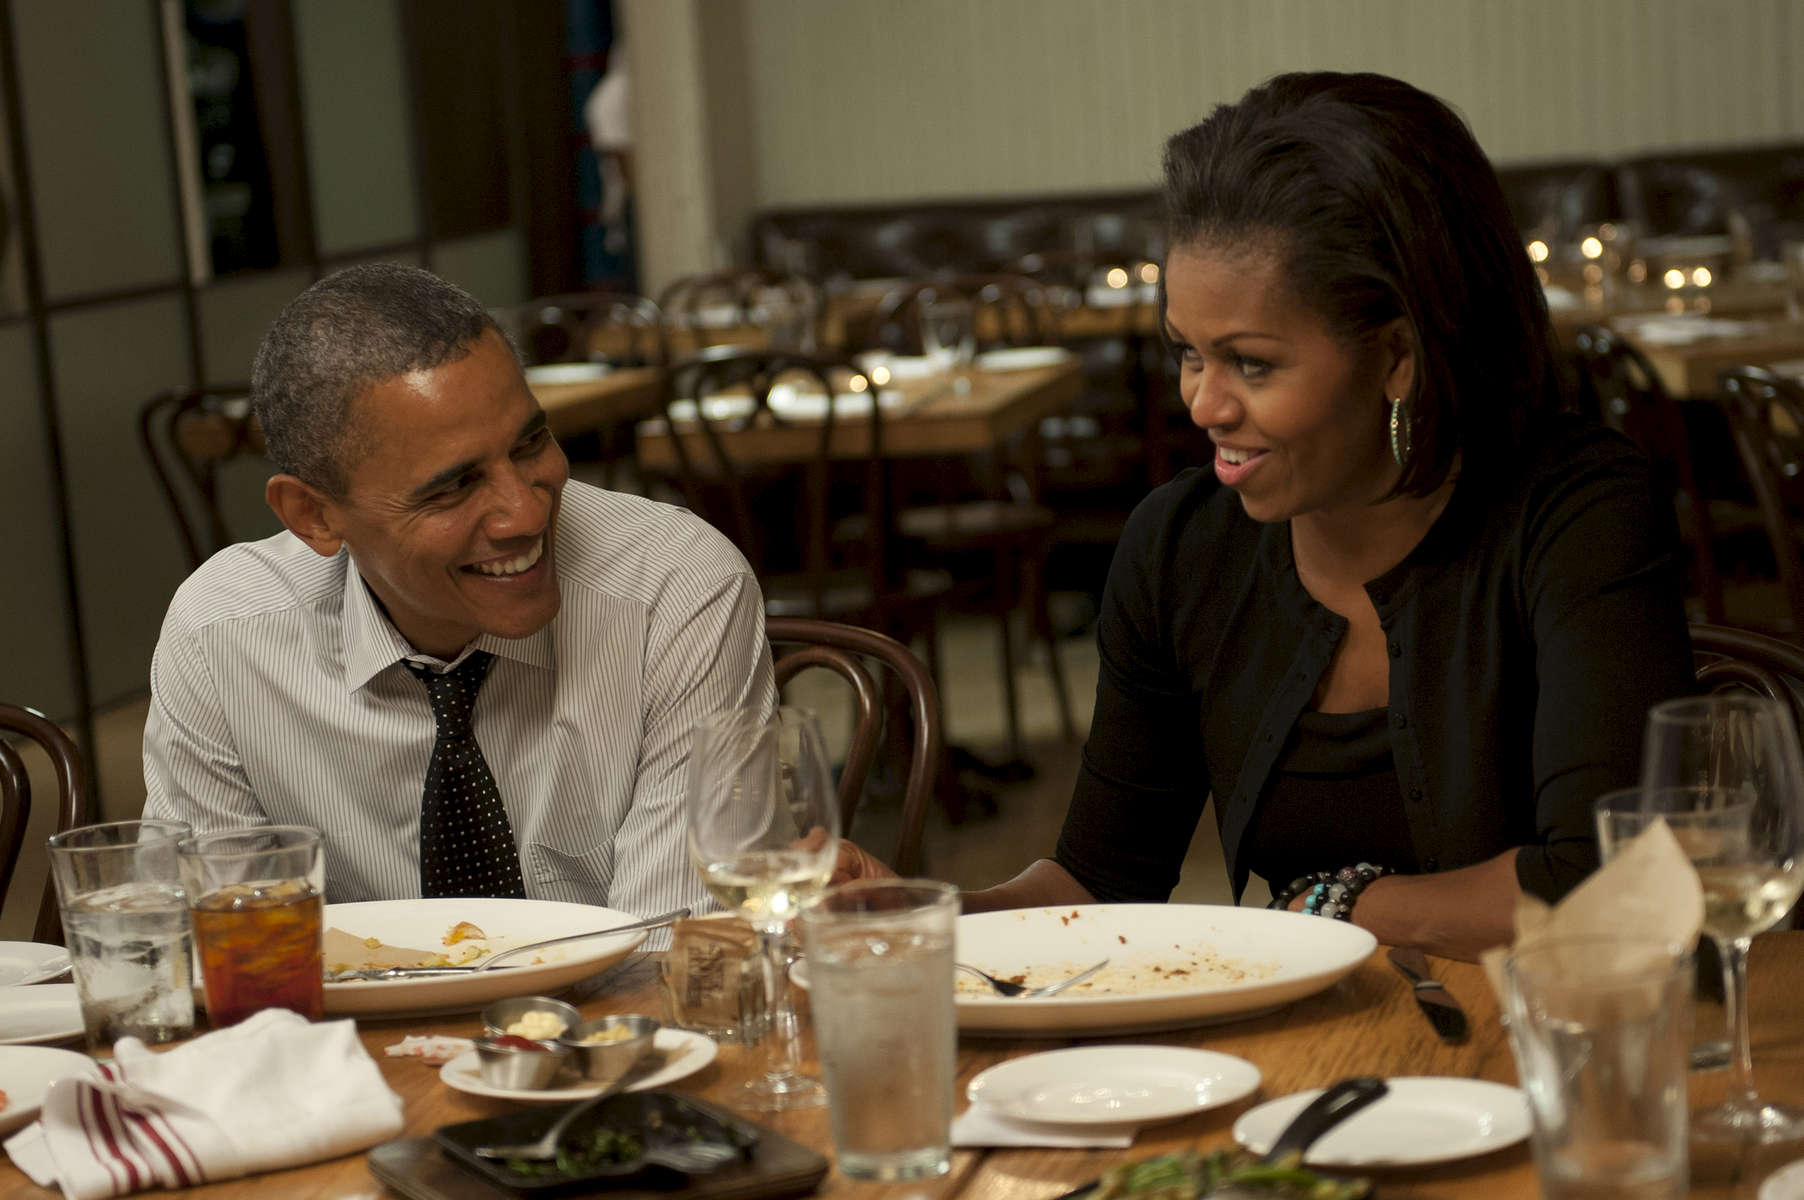 August 20, 2012 - WASHINGTON DC-  President Barack Obama and First Lady Michelle Obama grin at each other while dining at Mintwood Place in Washington DC. (Scout Tufankjian for Obama for America/Polaris)